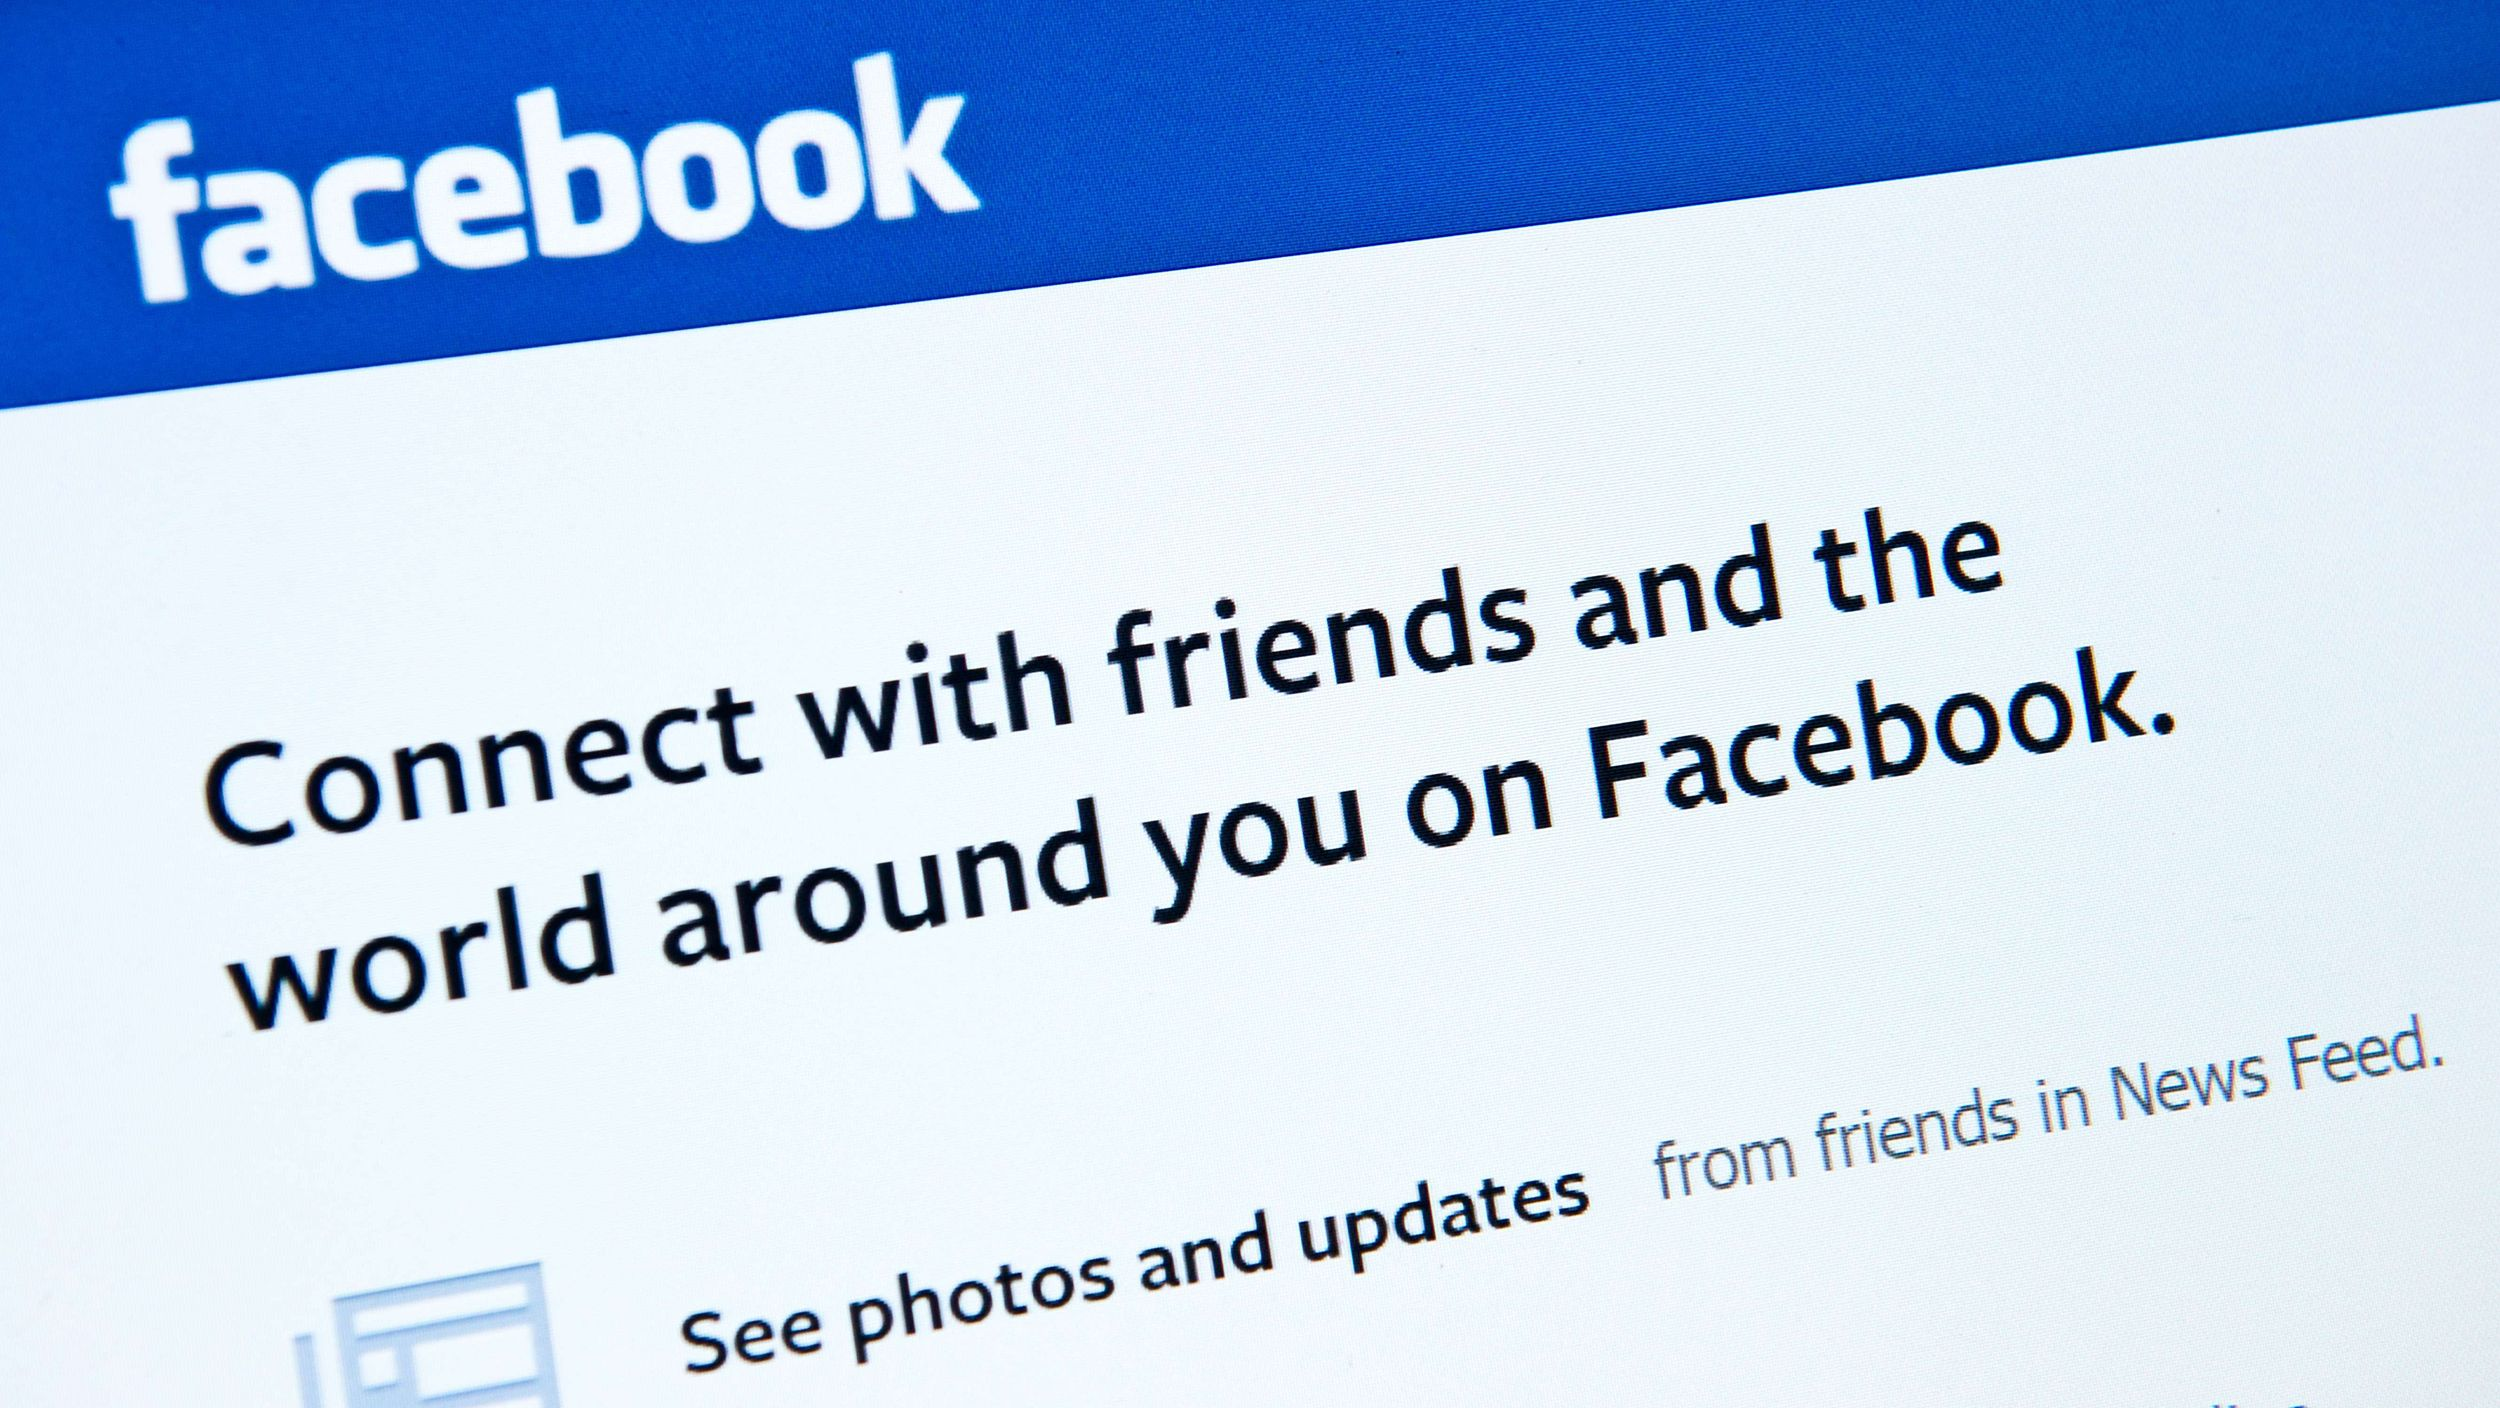 Our 'pretty' Facebook friends may be bad for our self-image